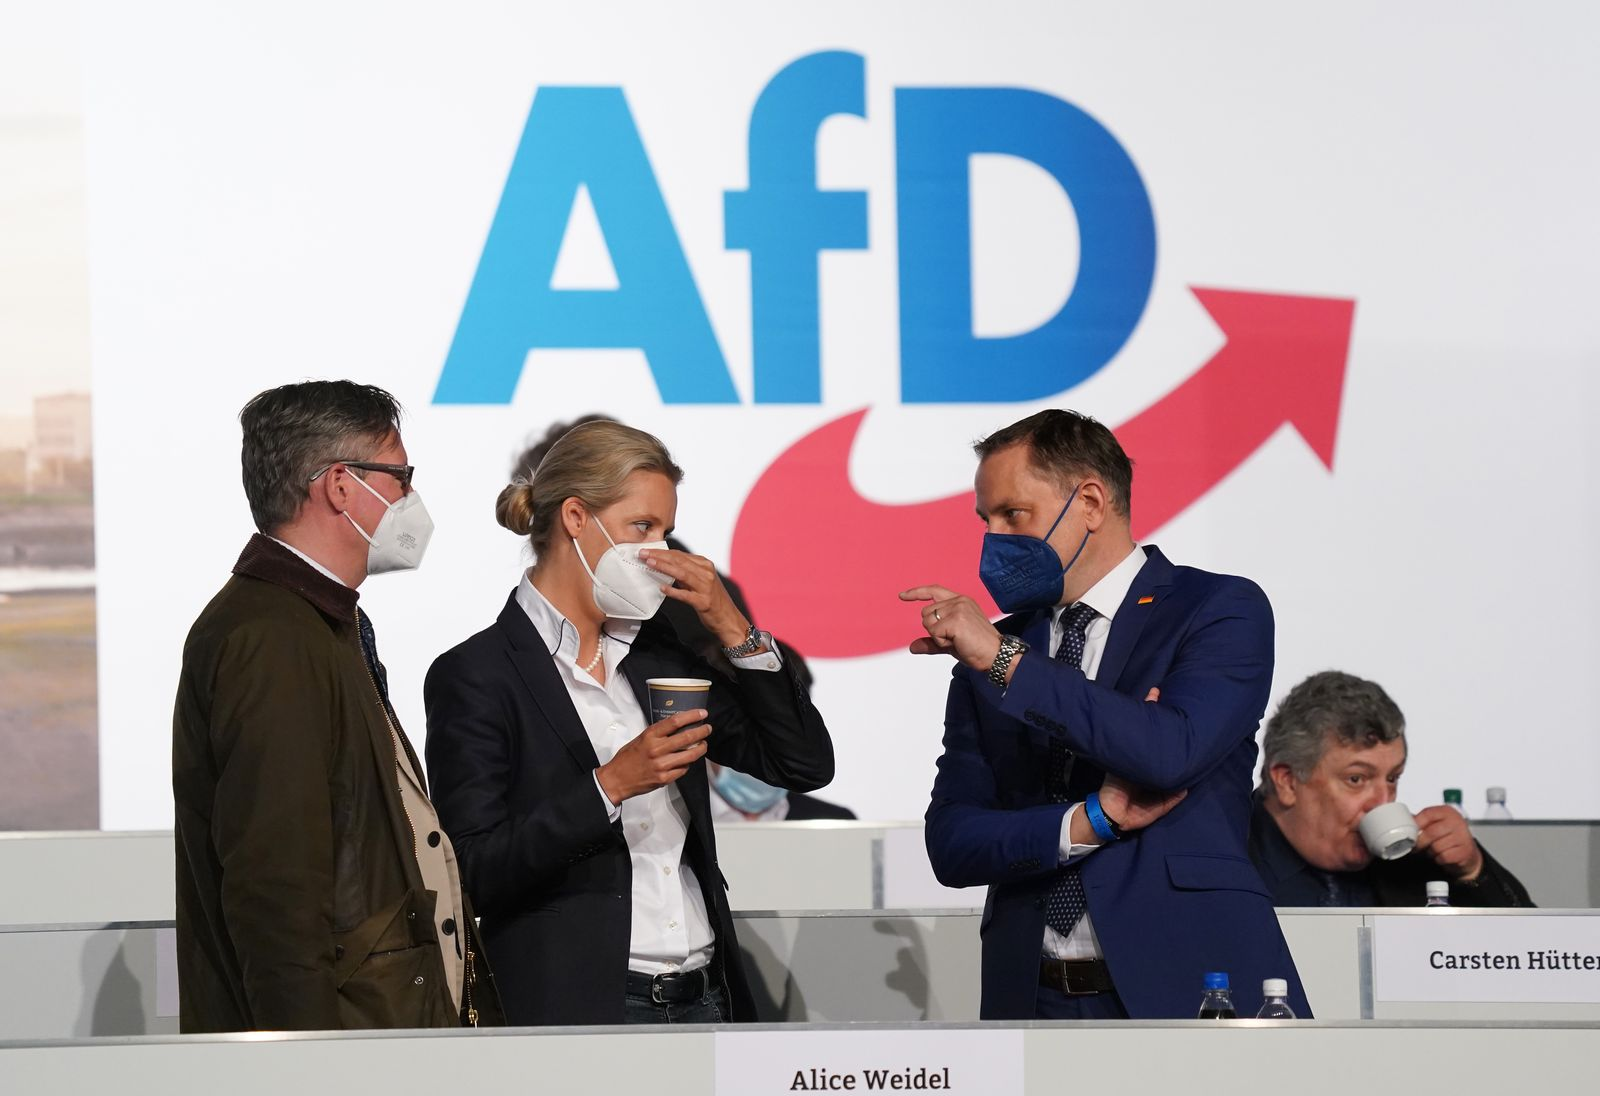 AfD Political Party Holds Federal Congress